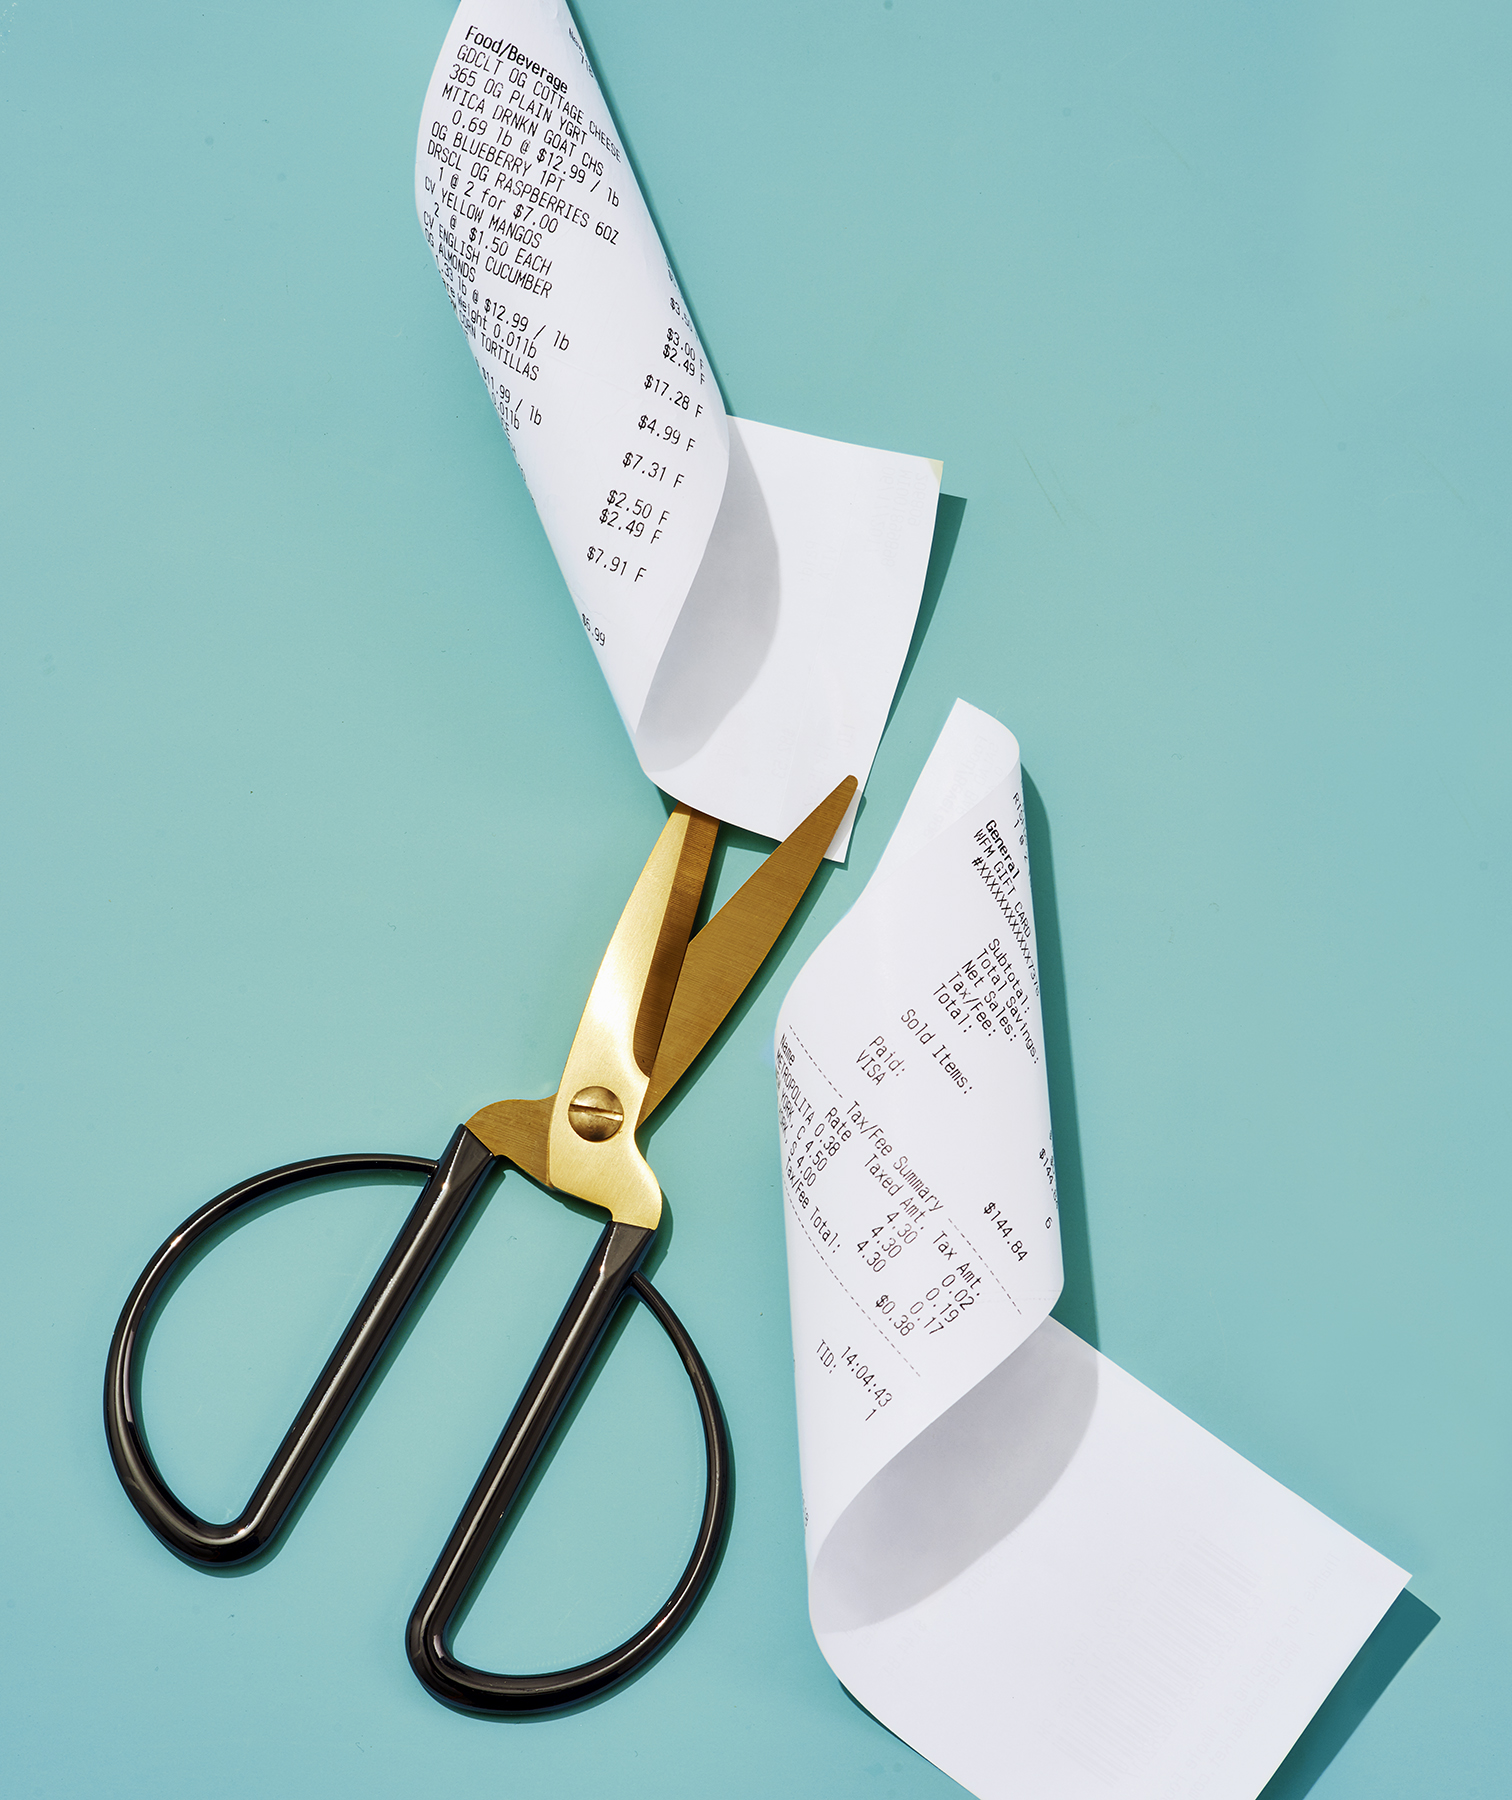 Scissors cutting receipt